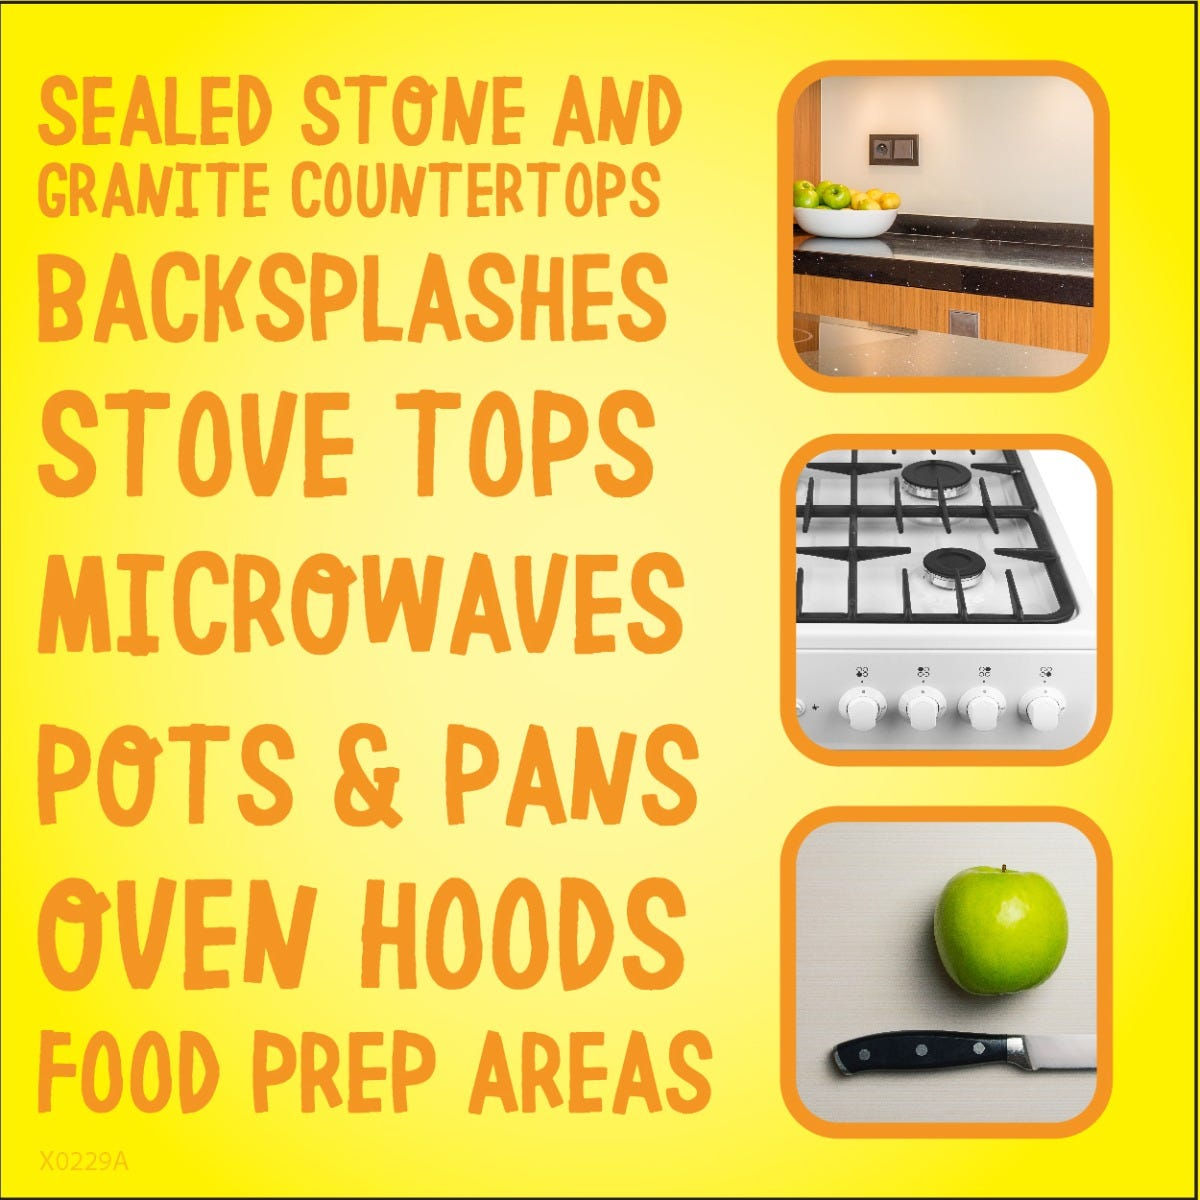 Works on variety of kitchen surfaces